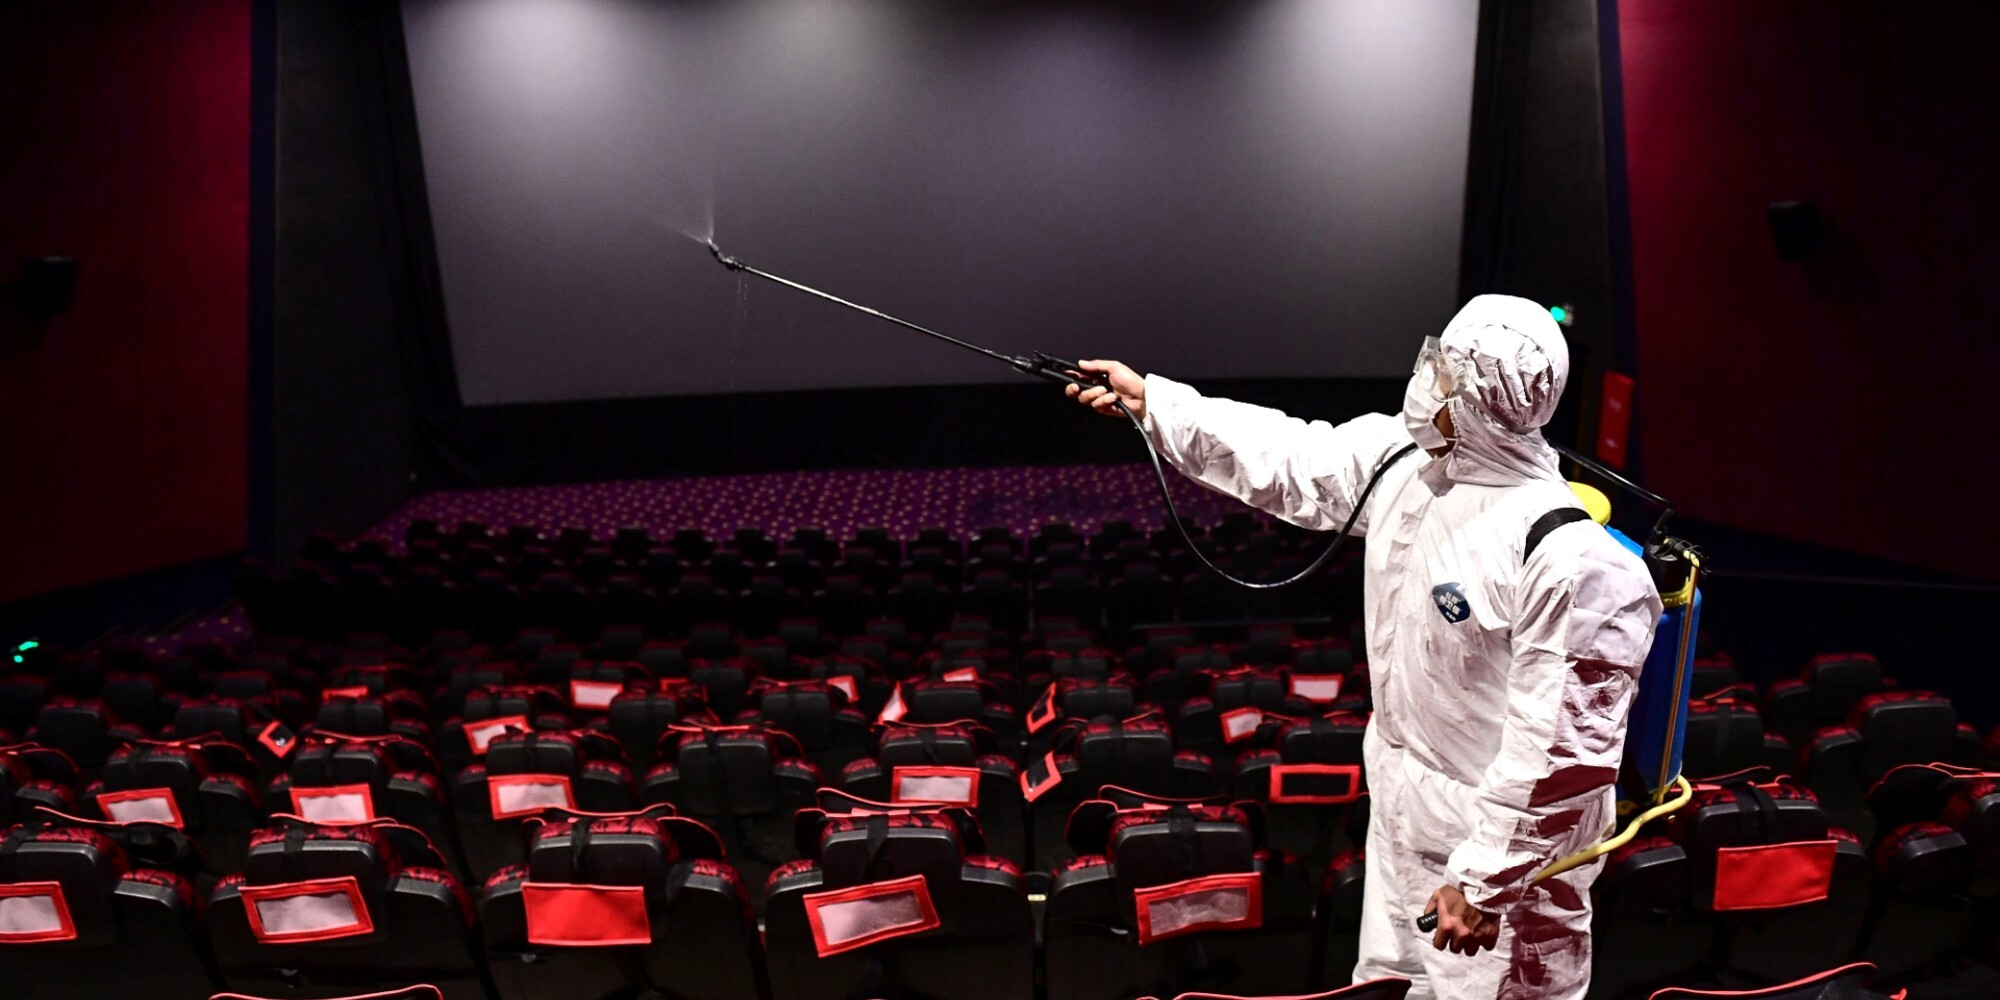 A worker in Shenyang, China, sprays disinfectant at a theater that's expected to reopen.